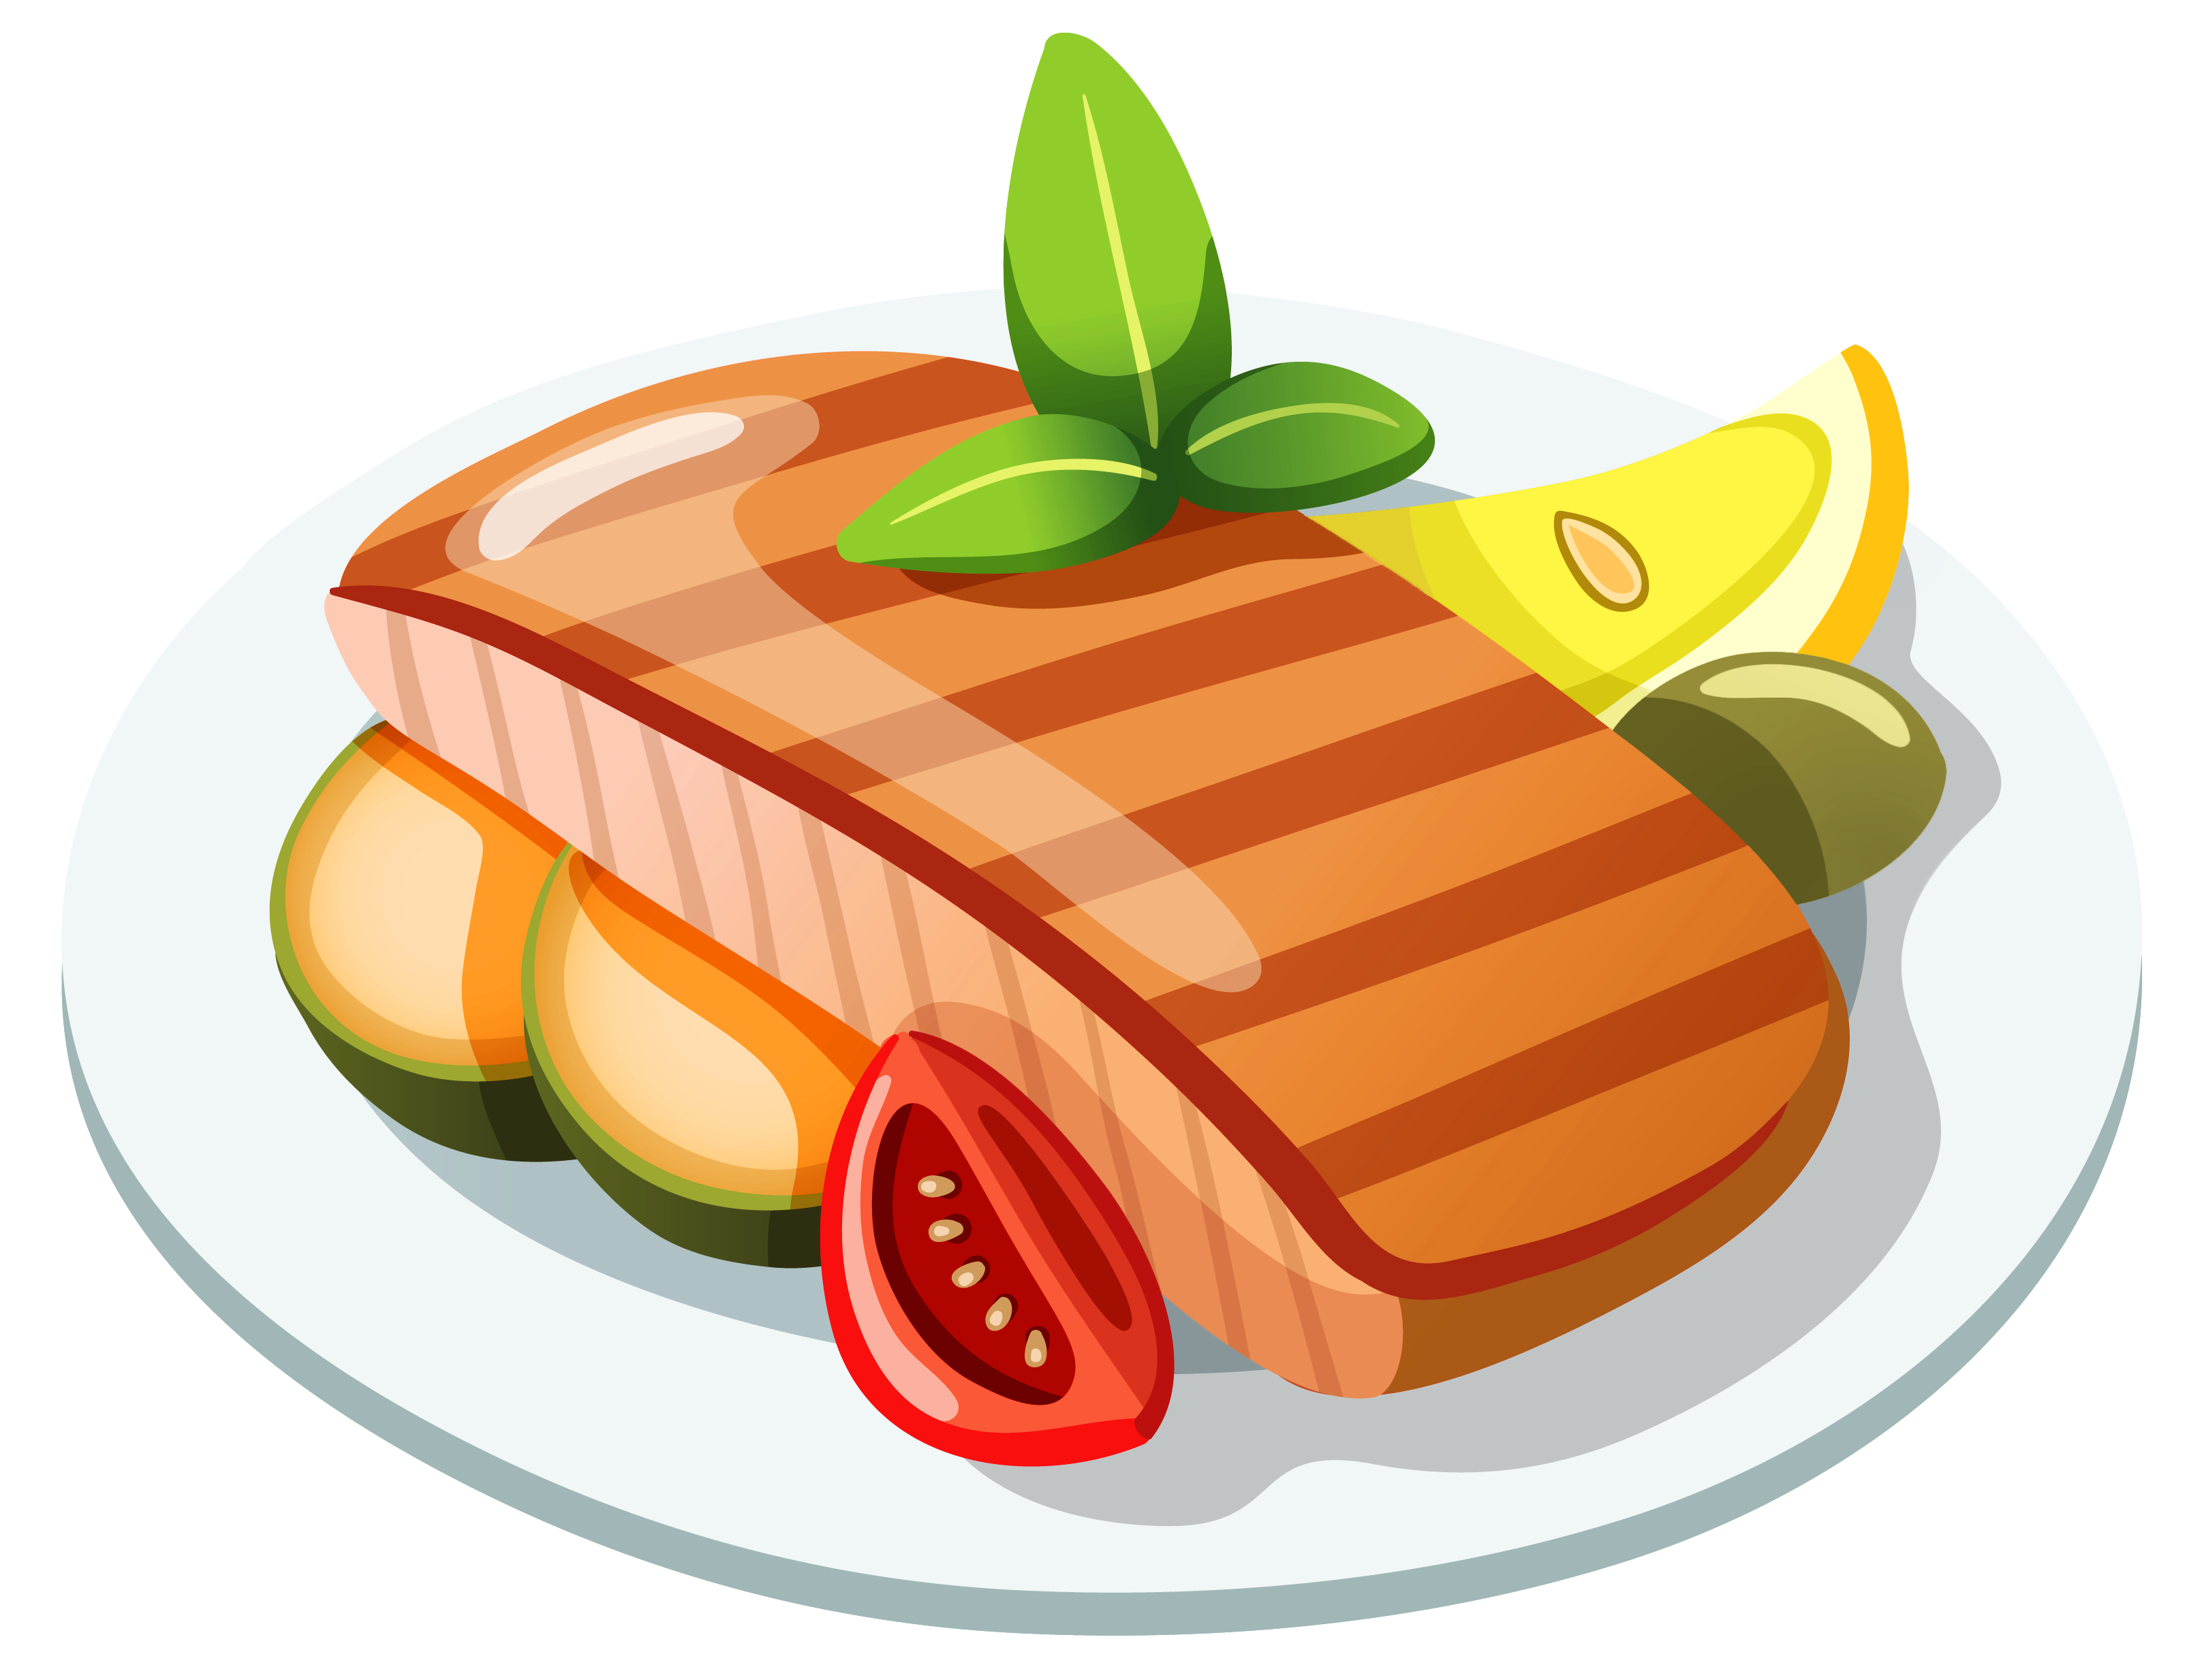 transparent stock Grilled clipart grilled food. Cooked salmon cool smoked